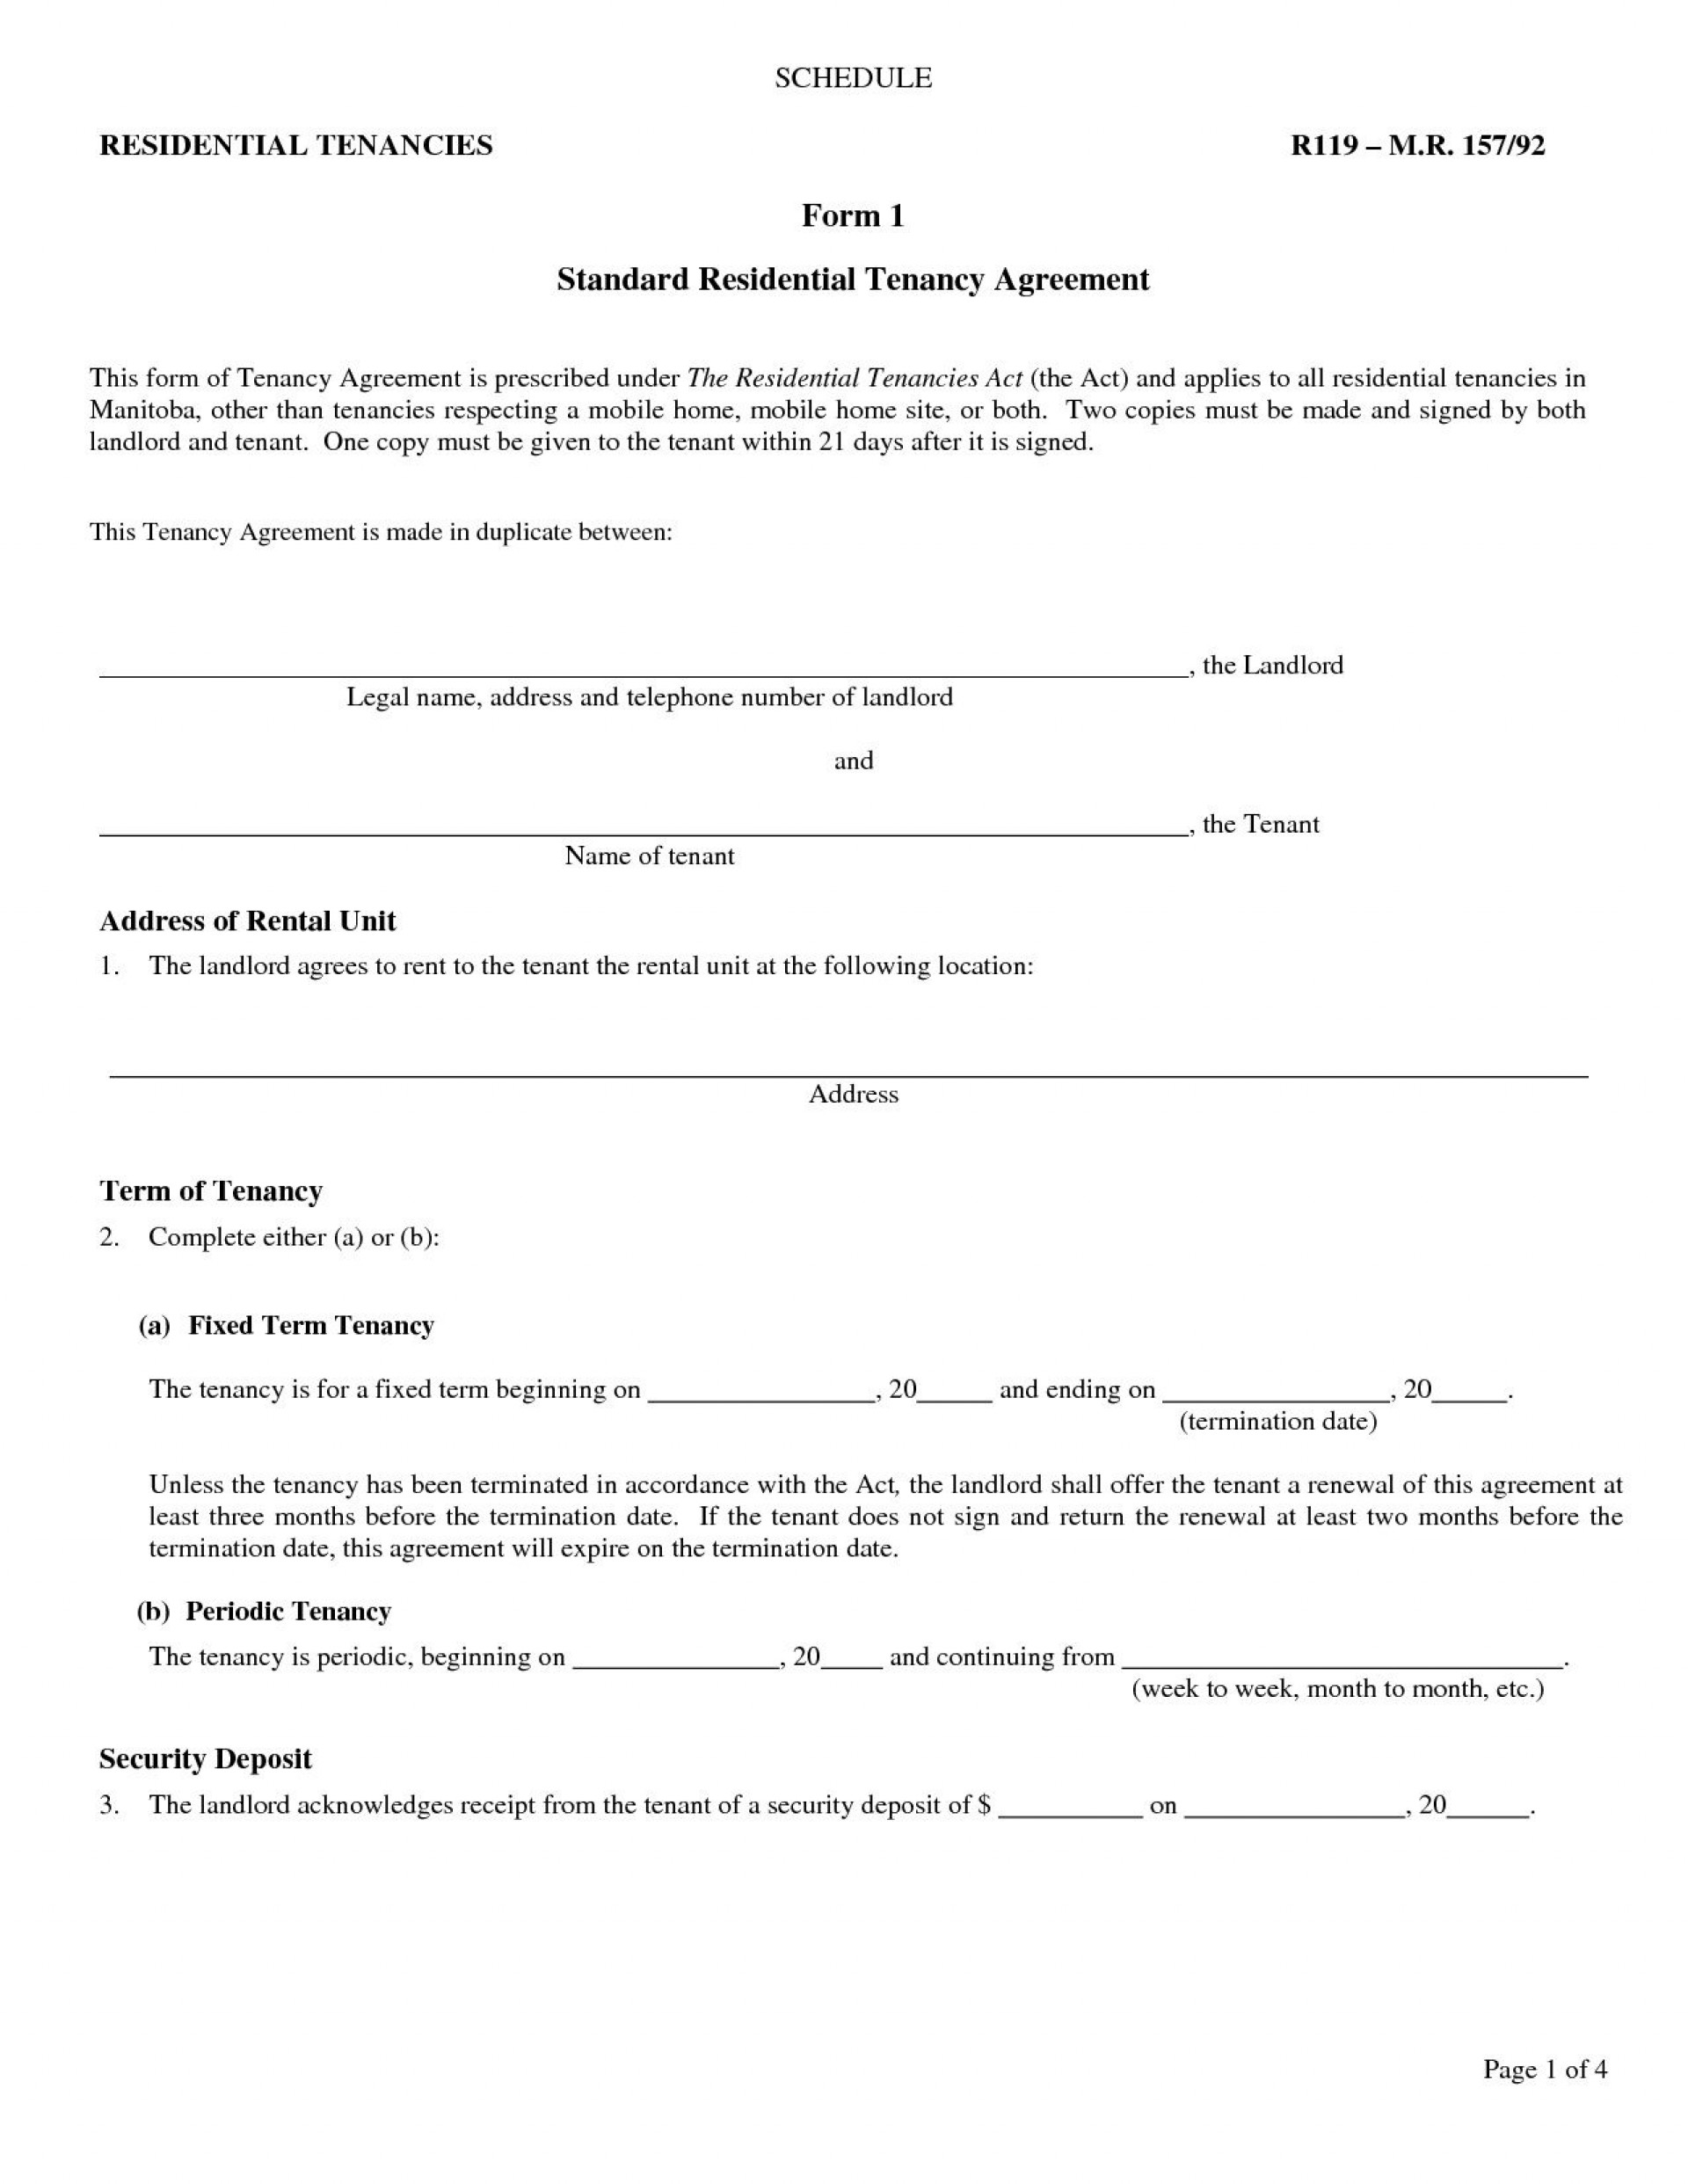 002 Surprising Renter Lease Agreement Template High Definition  Apartment Form Early Termination Of By Tenant South Africa Free1920